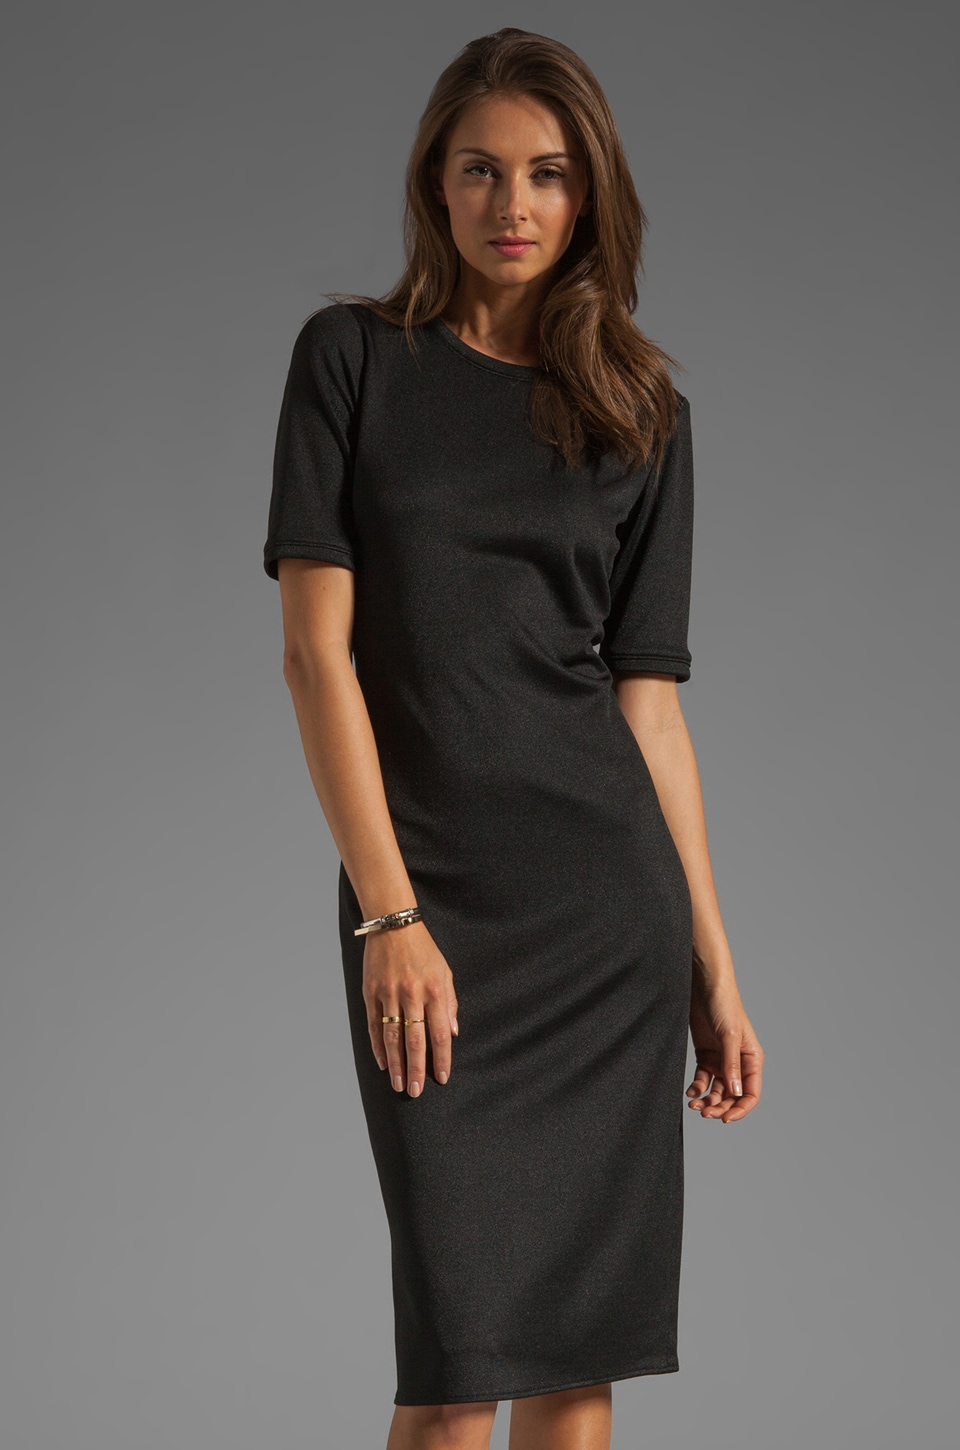 Tibi Short Sleeve Mid Length Dress in Black